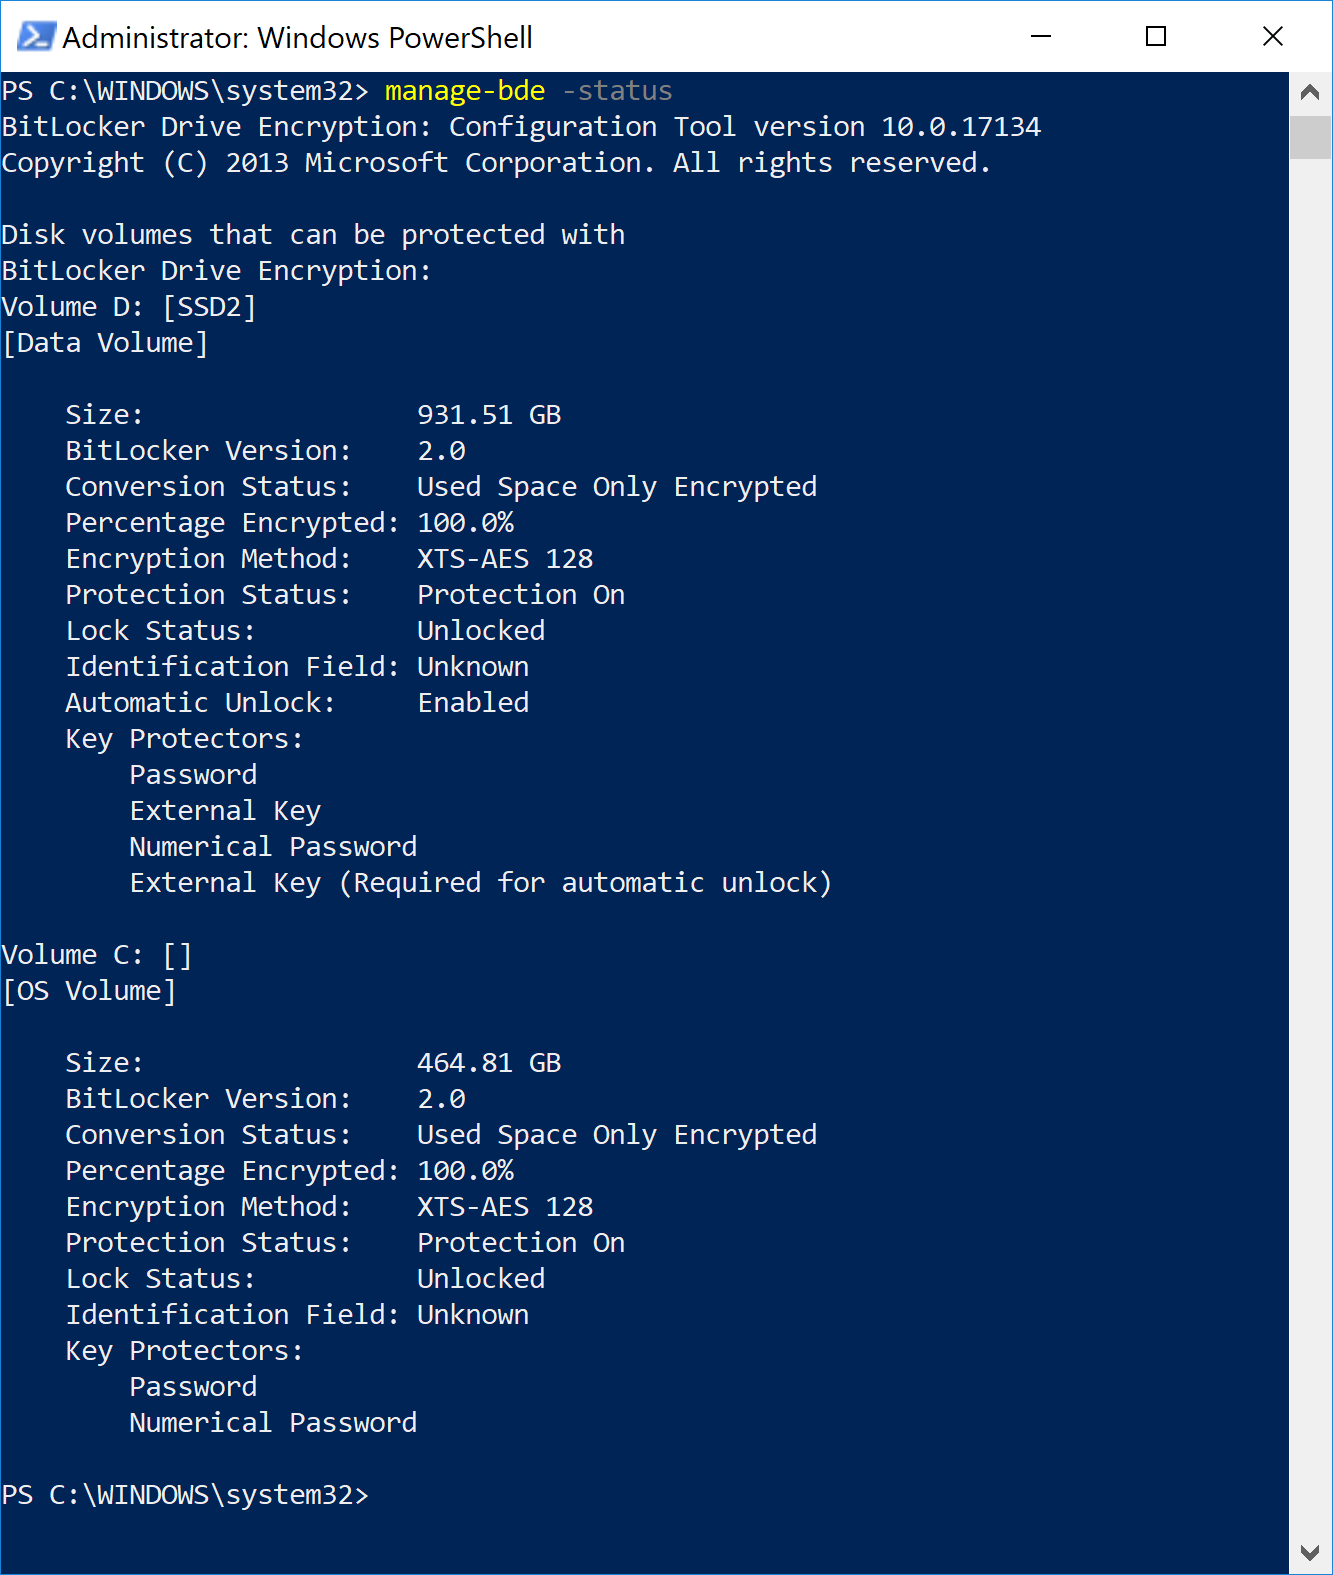 Windows Powershell terminal with a report on encryption status